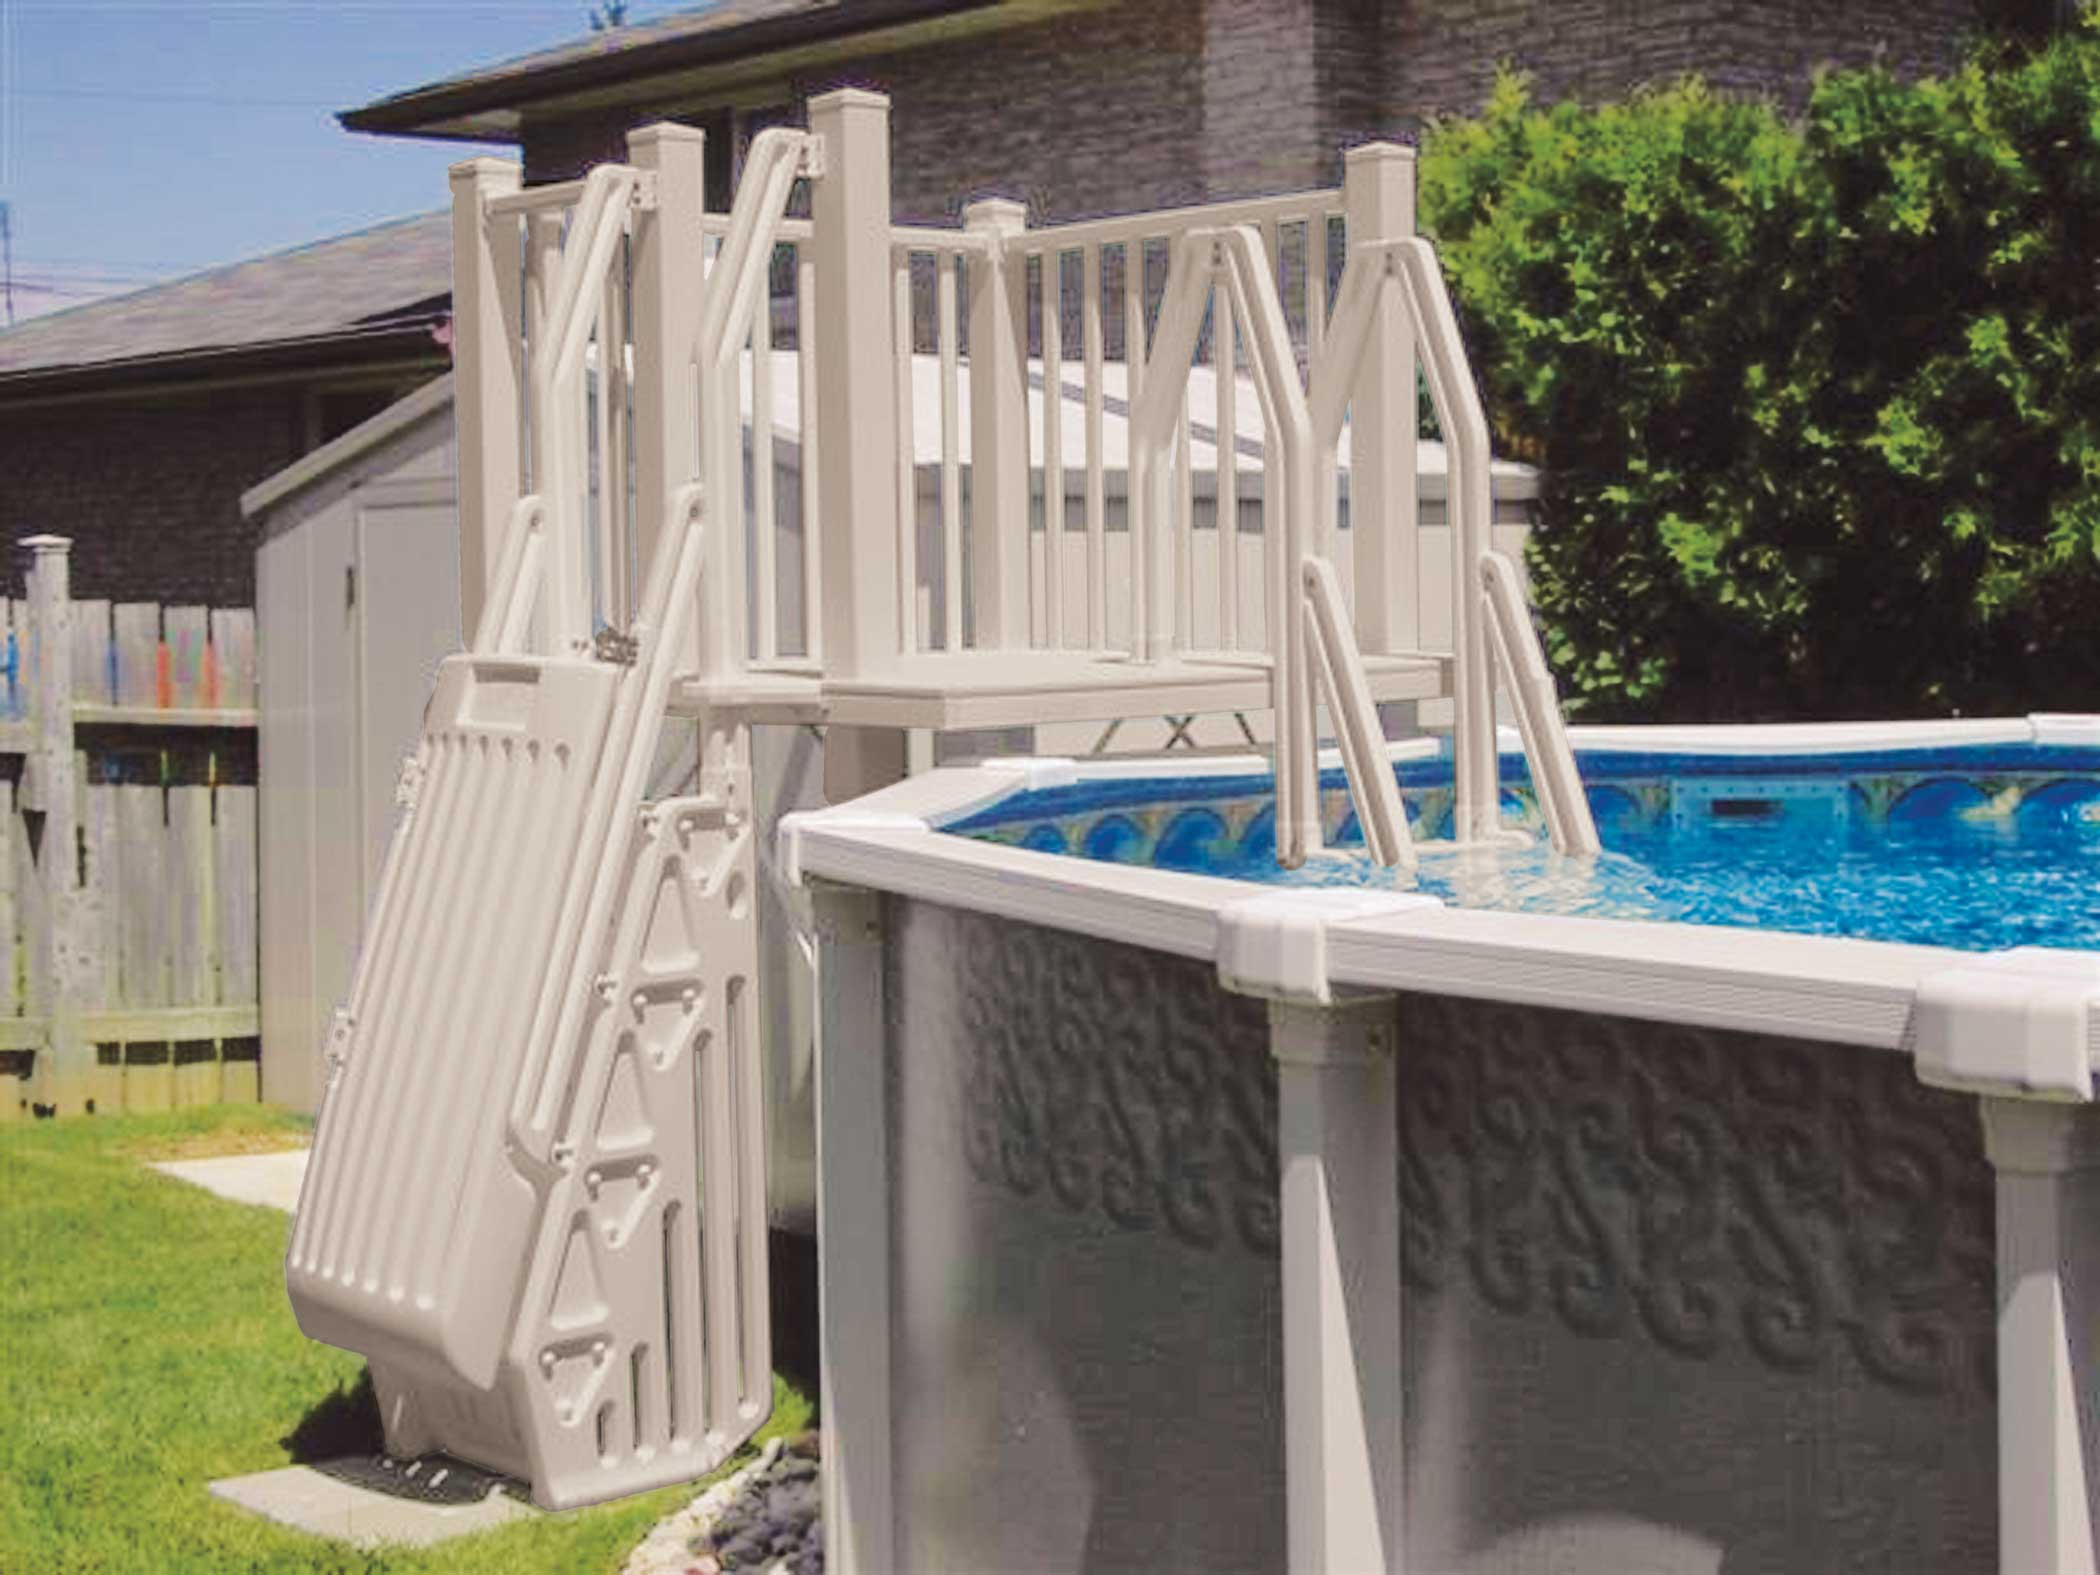 Vinyl Works Above Ground Swimming Pool Resin Deck Kit   Taupe 5 X 5 Feet    Walmart.com